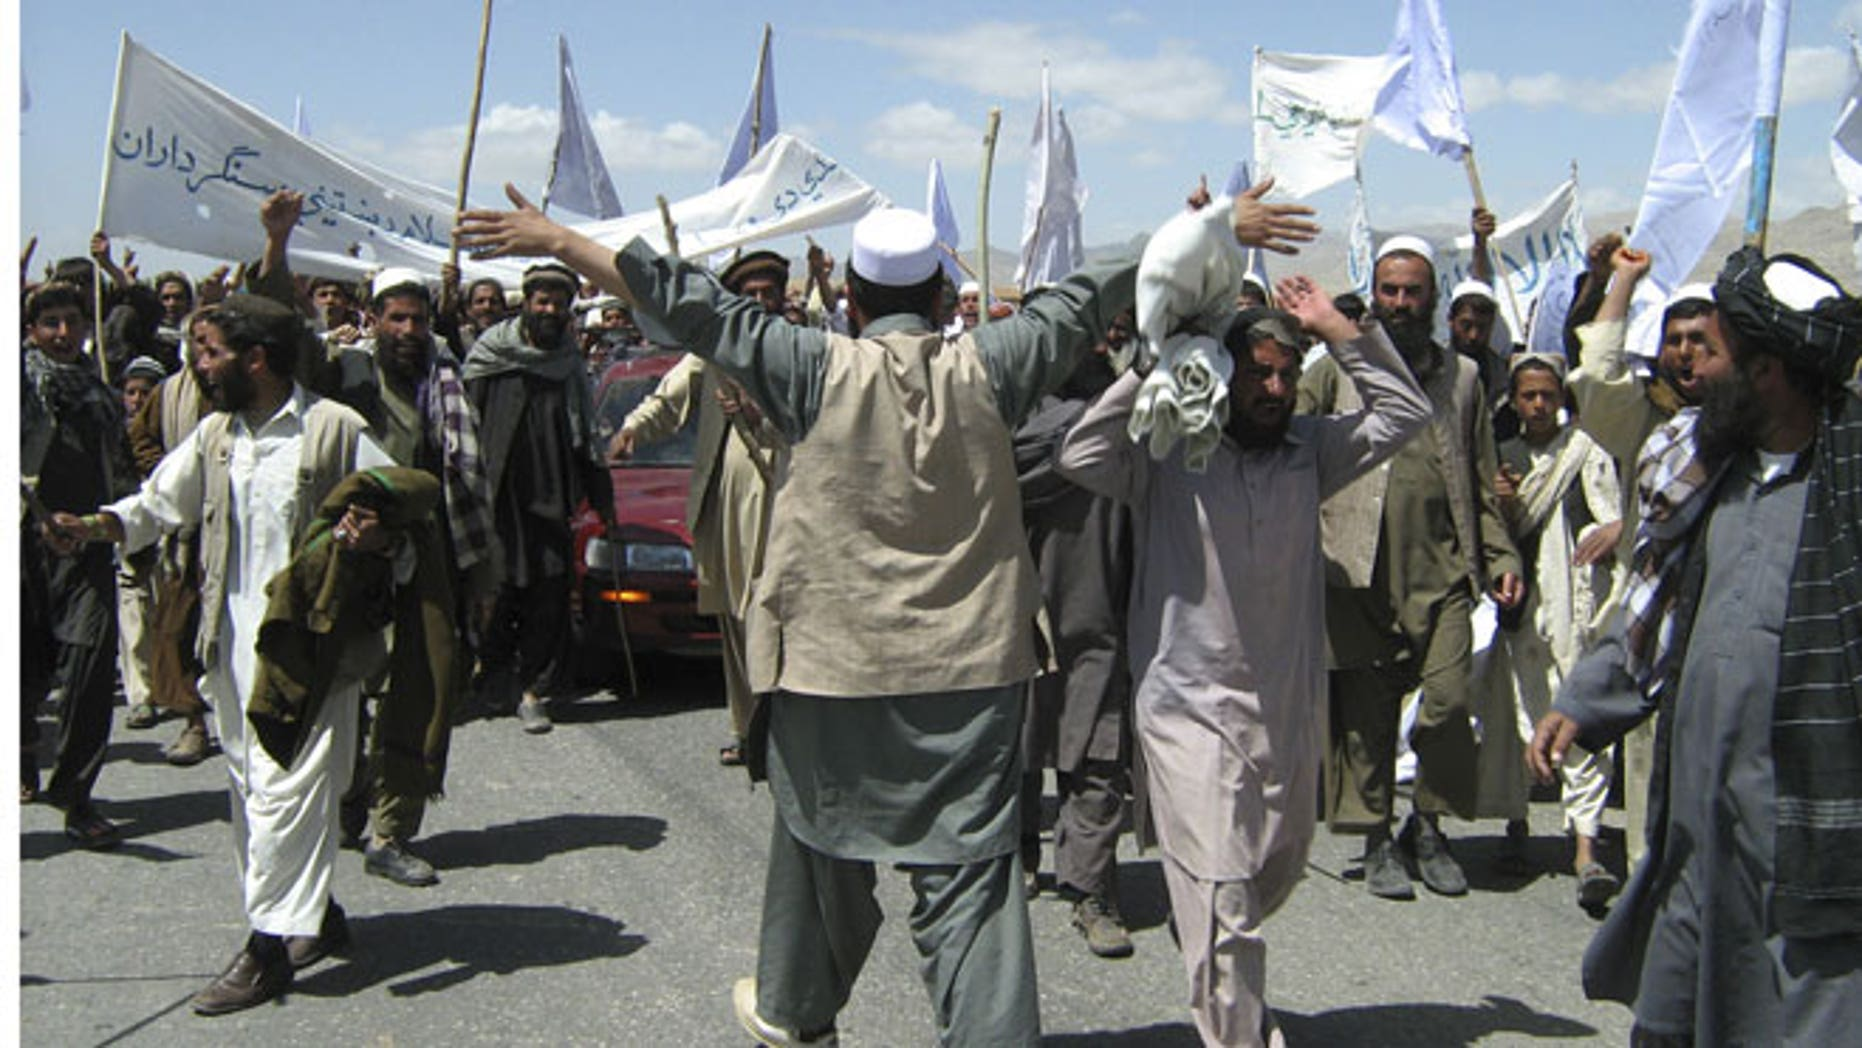 May 26, 2012: More than 1500 Afghans block the highway between Kabul and Kandahar in Seed Abad, Wardak province, Afghanistan. The protesters demanded a stop to military night operations.